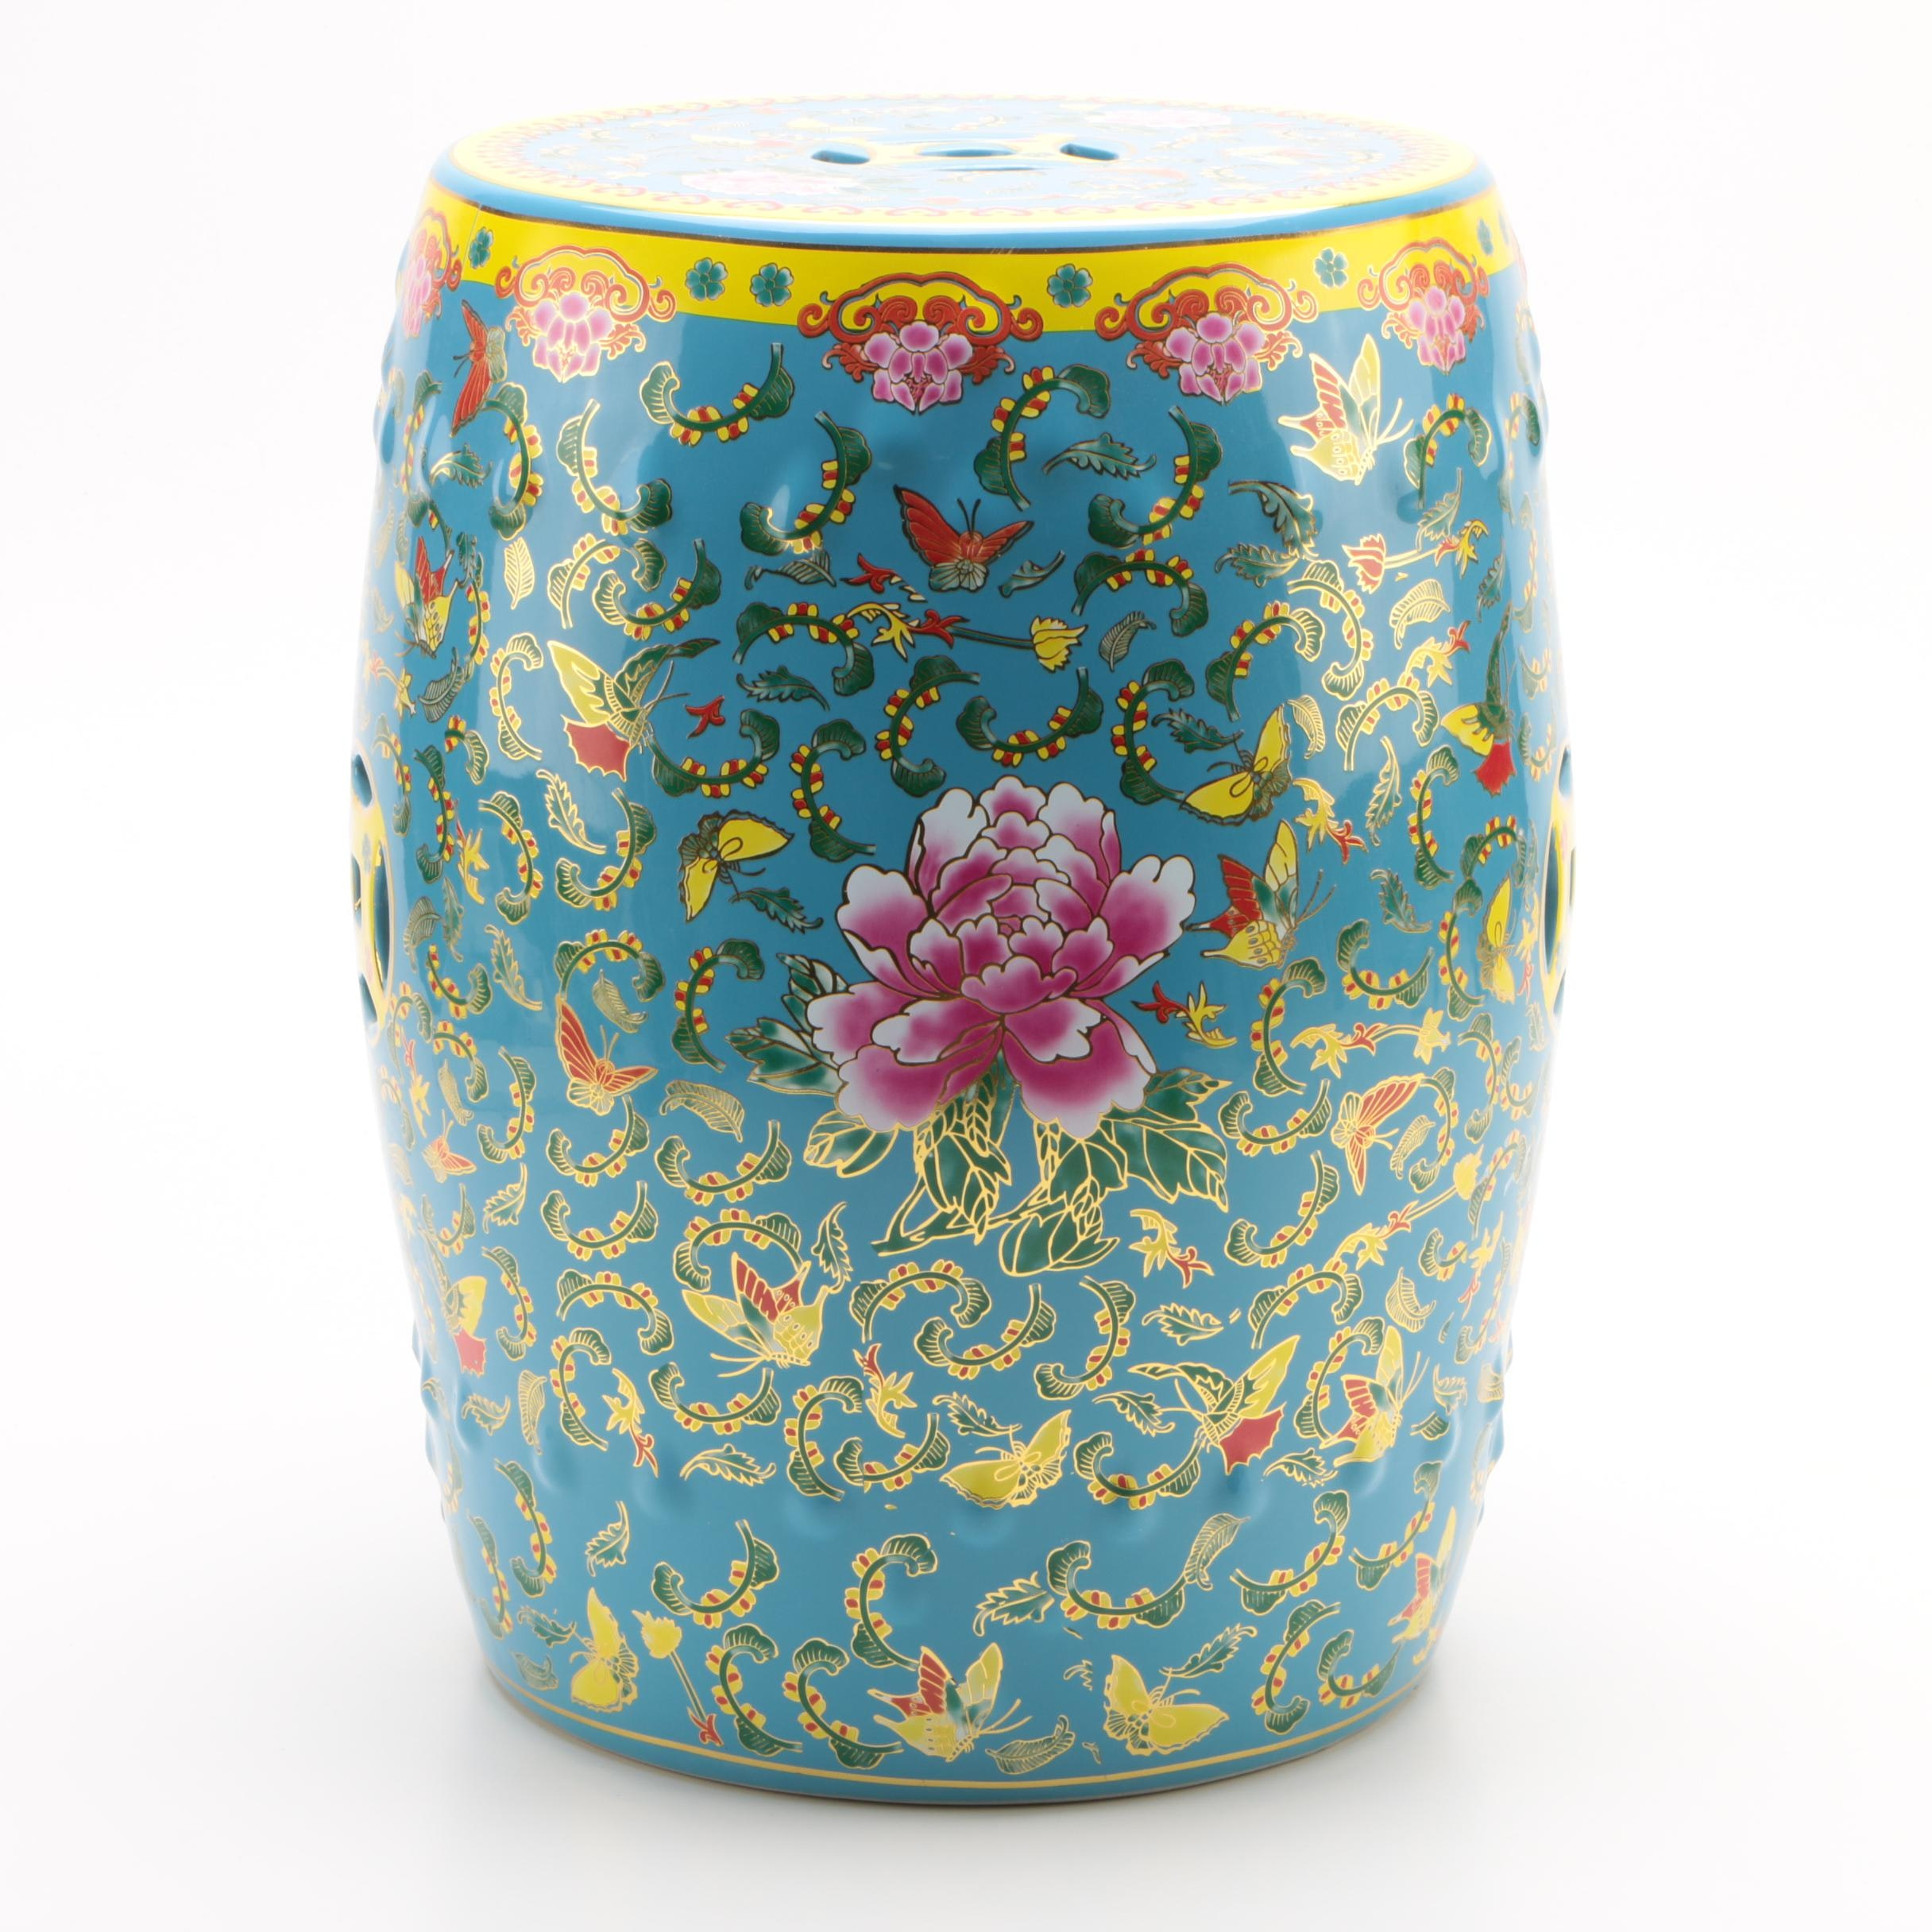 Chinese Blue And Yellow Ceramic Garden Stool With Flower And Butterfly  Motif ...